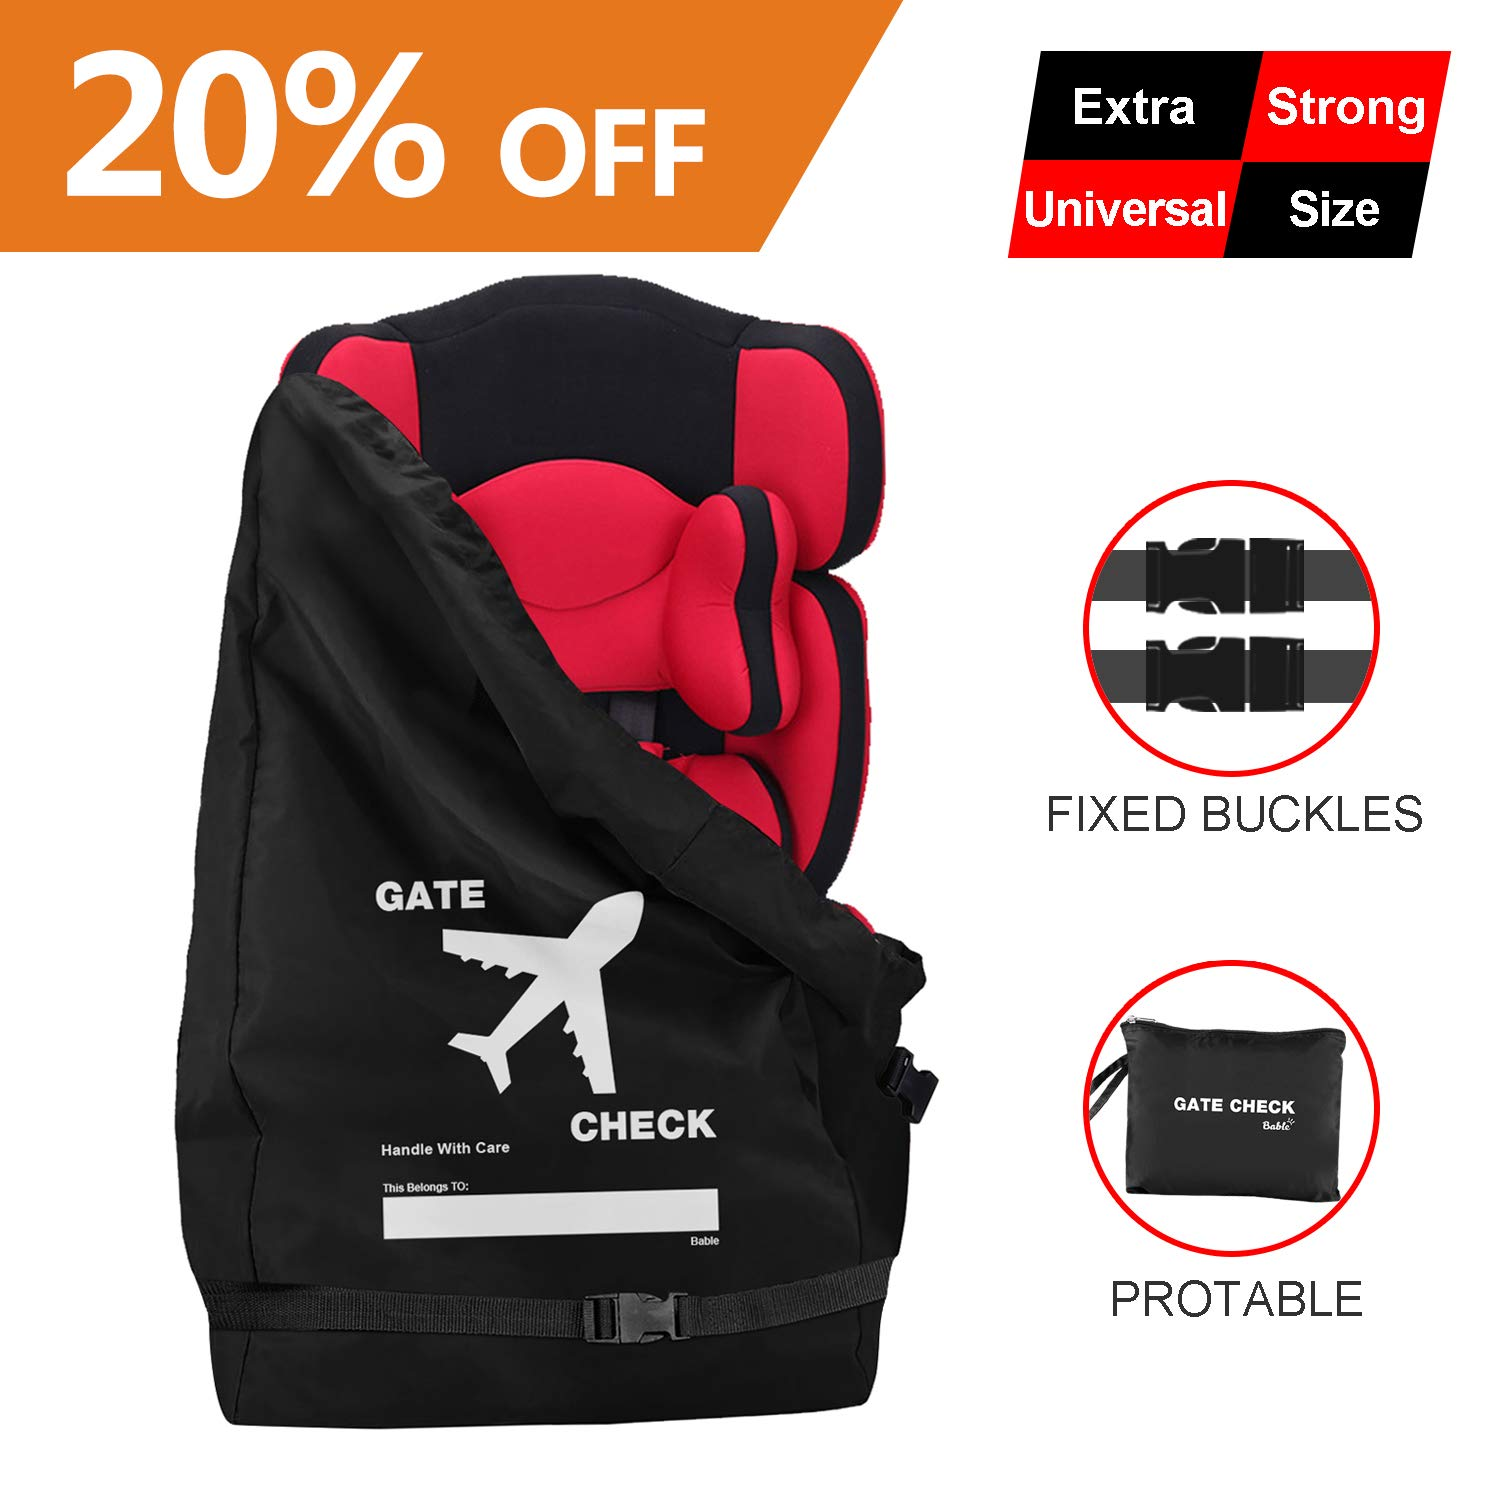 Compatible with Most Name Brand for Airport Gate Check-in Save Money Universal Size Car Seat Cover Increase Space and Thickness Make Traveling Easier Bable Car Seat Travel Bag